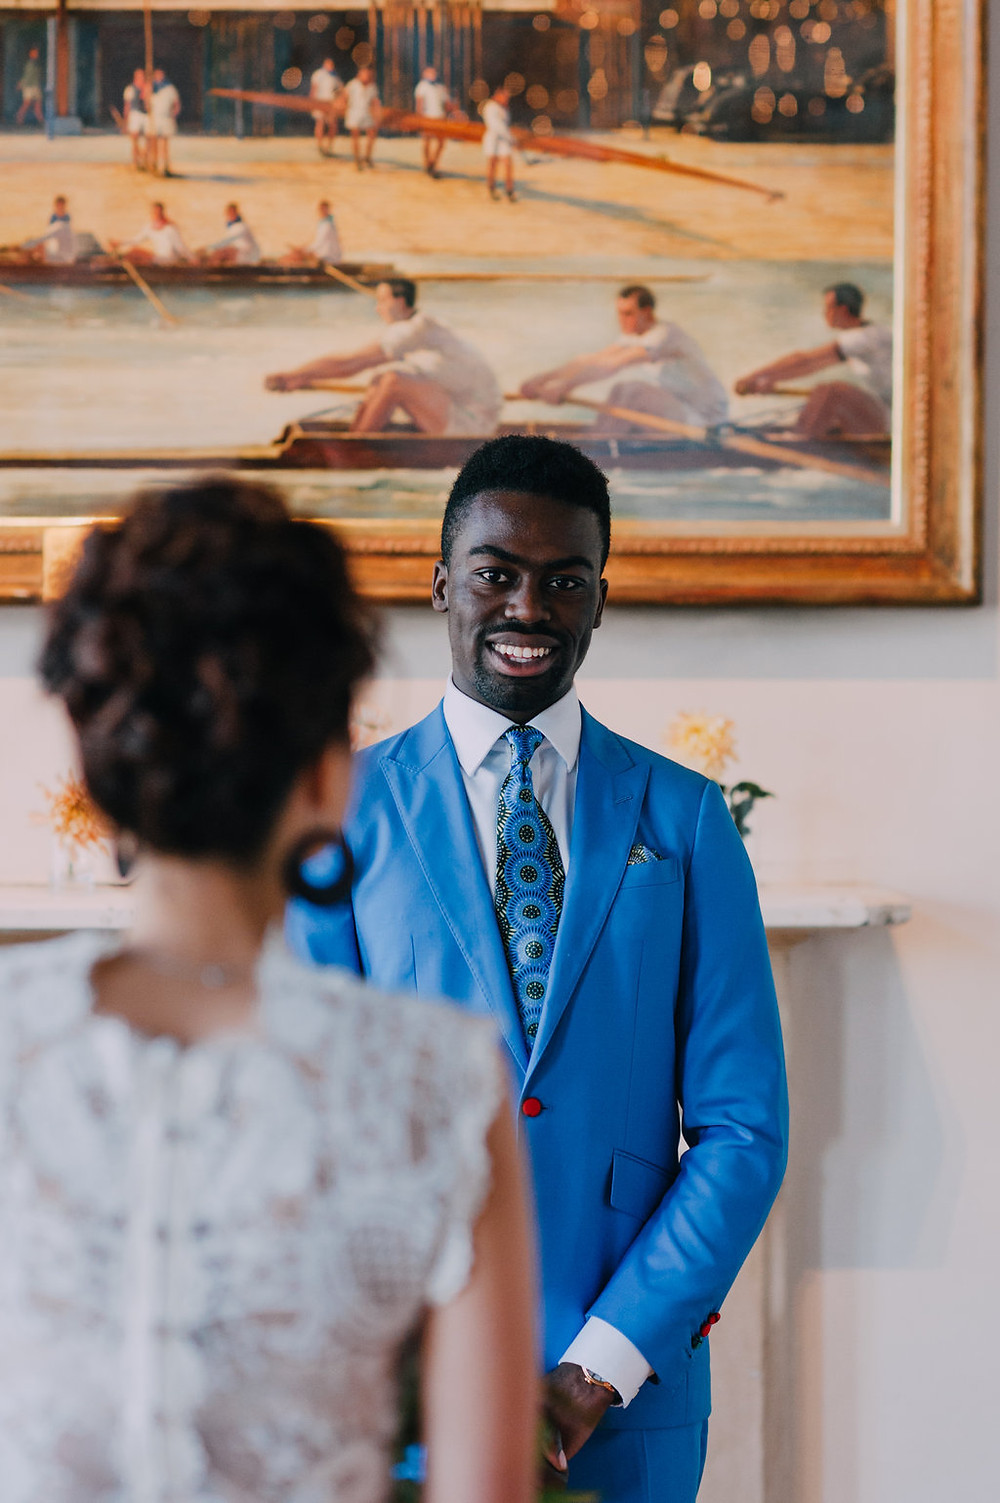 Groom at wedding ceremony in London Rowing Club